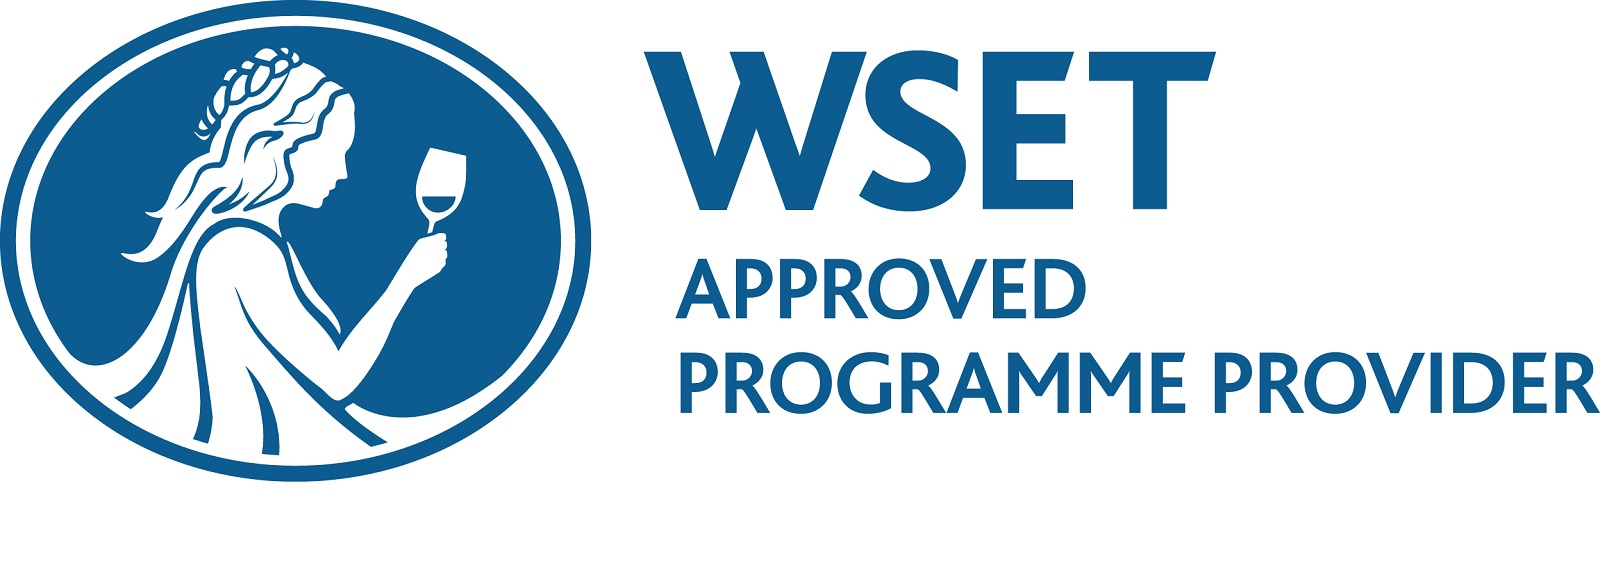 WSET Approved Programme Provider, West of England Wine School